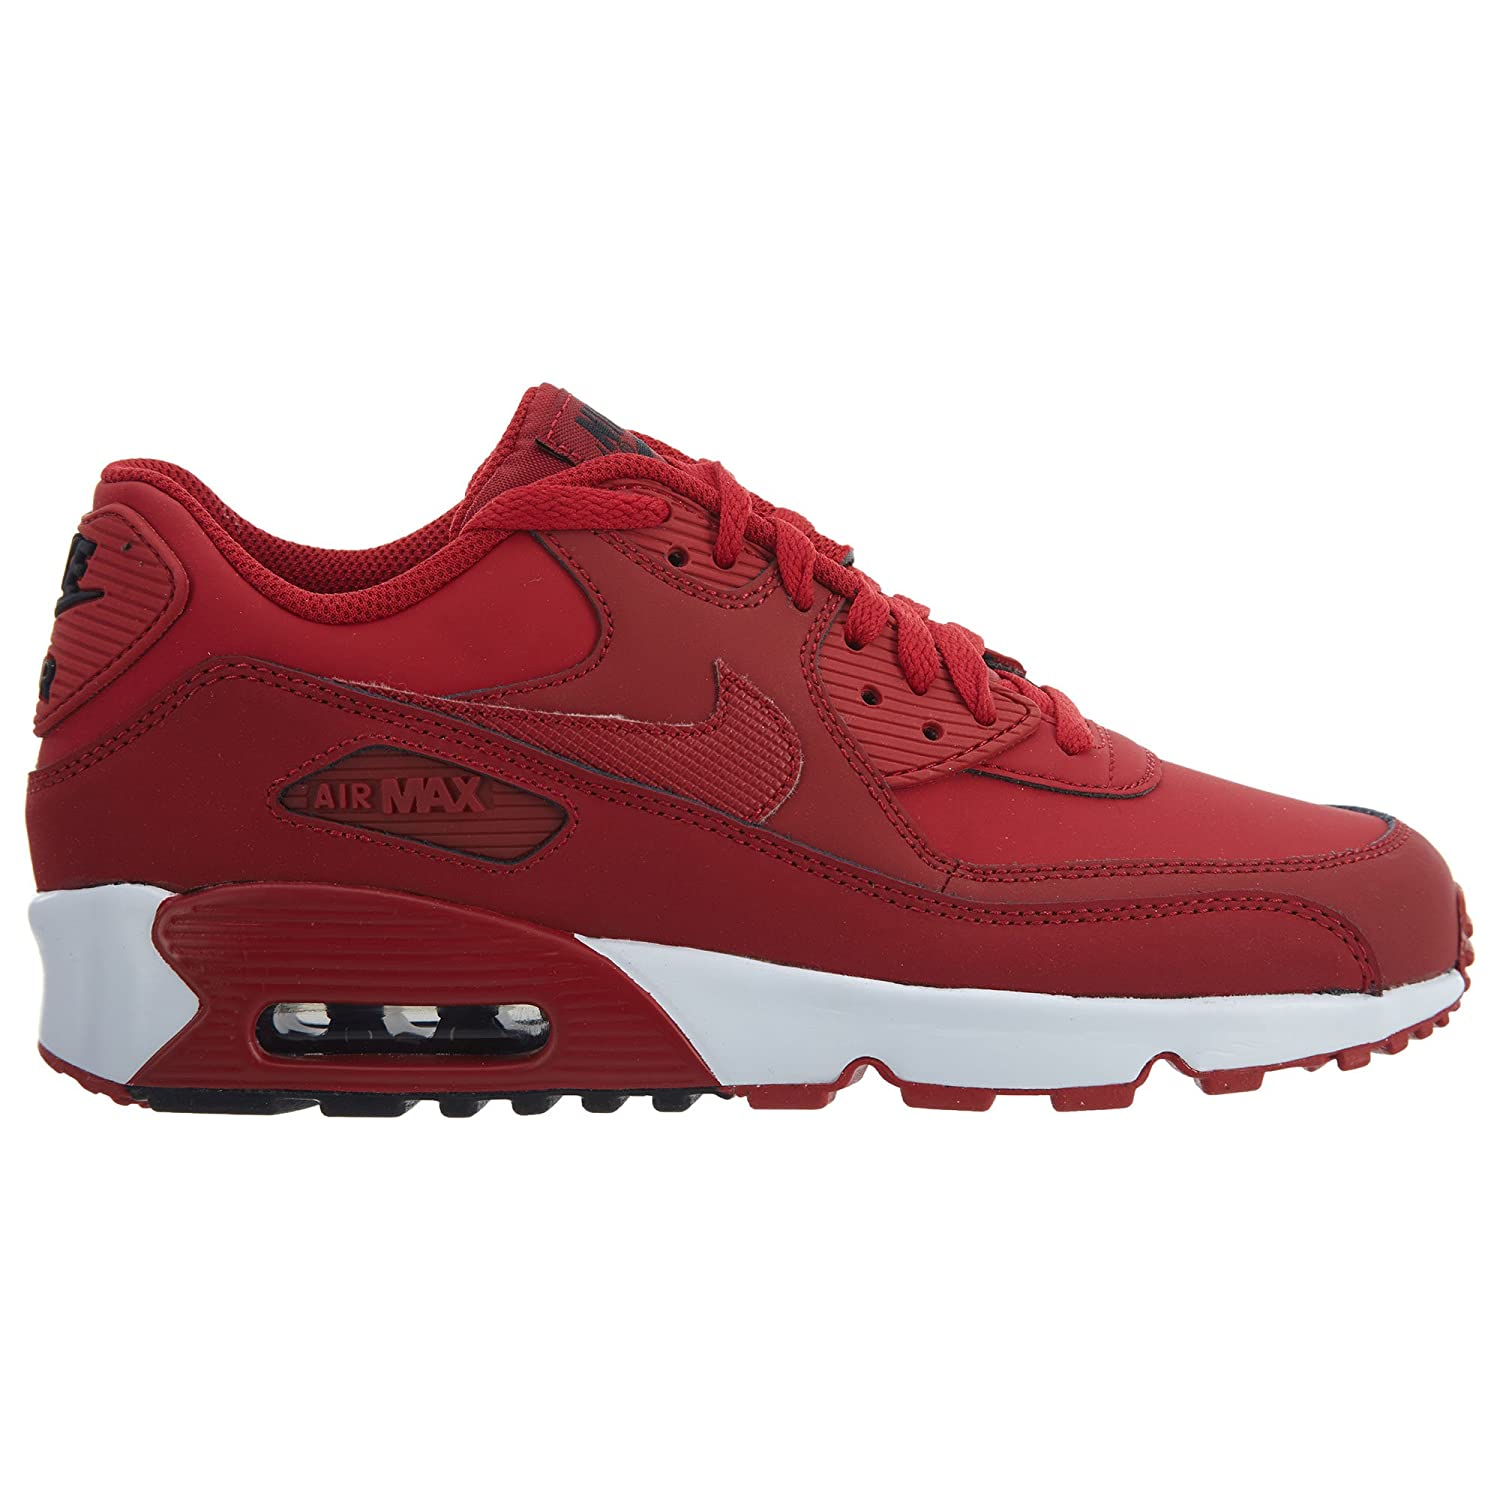 AIR MAX 90 salon